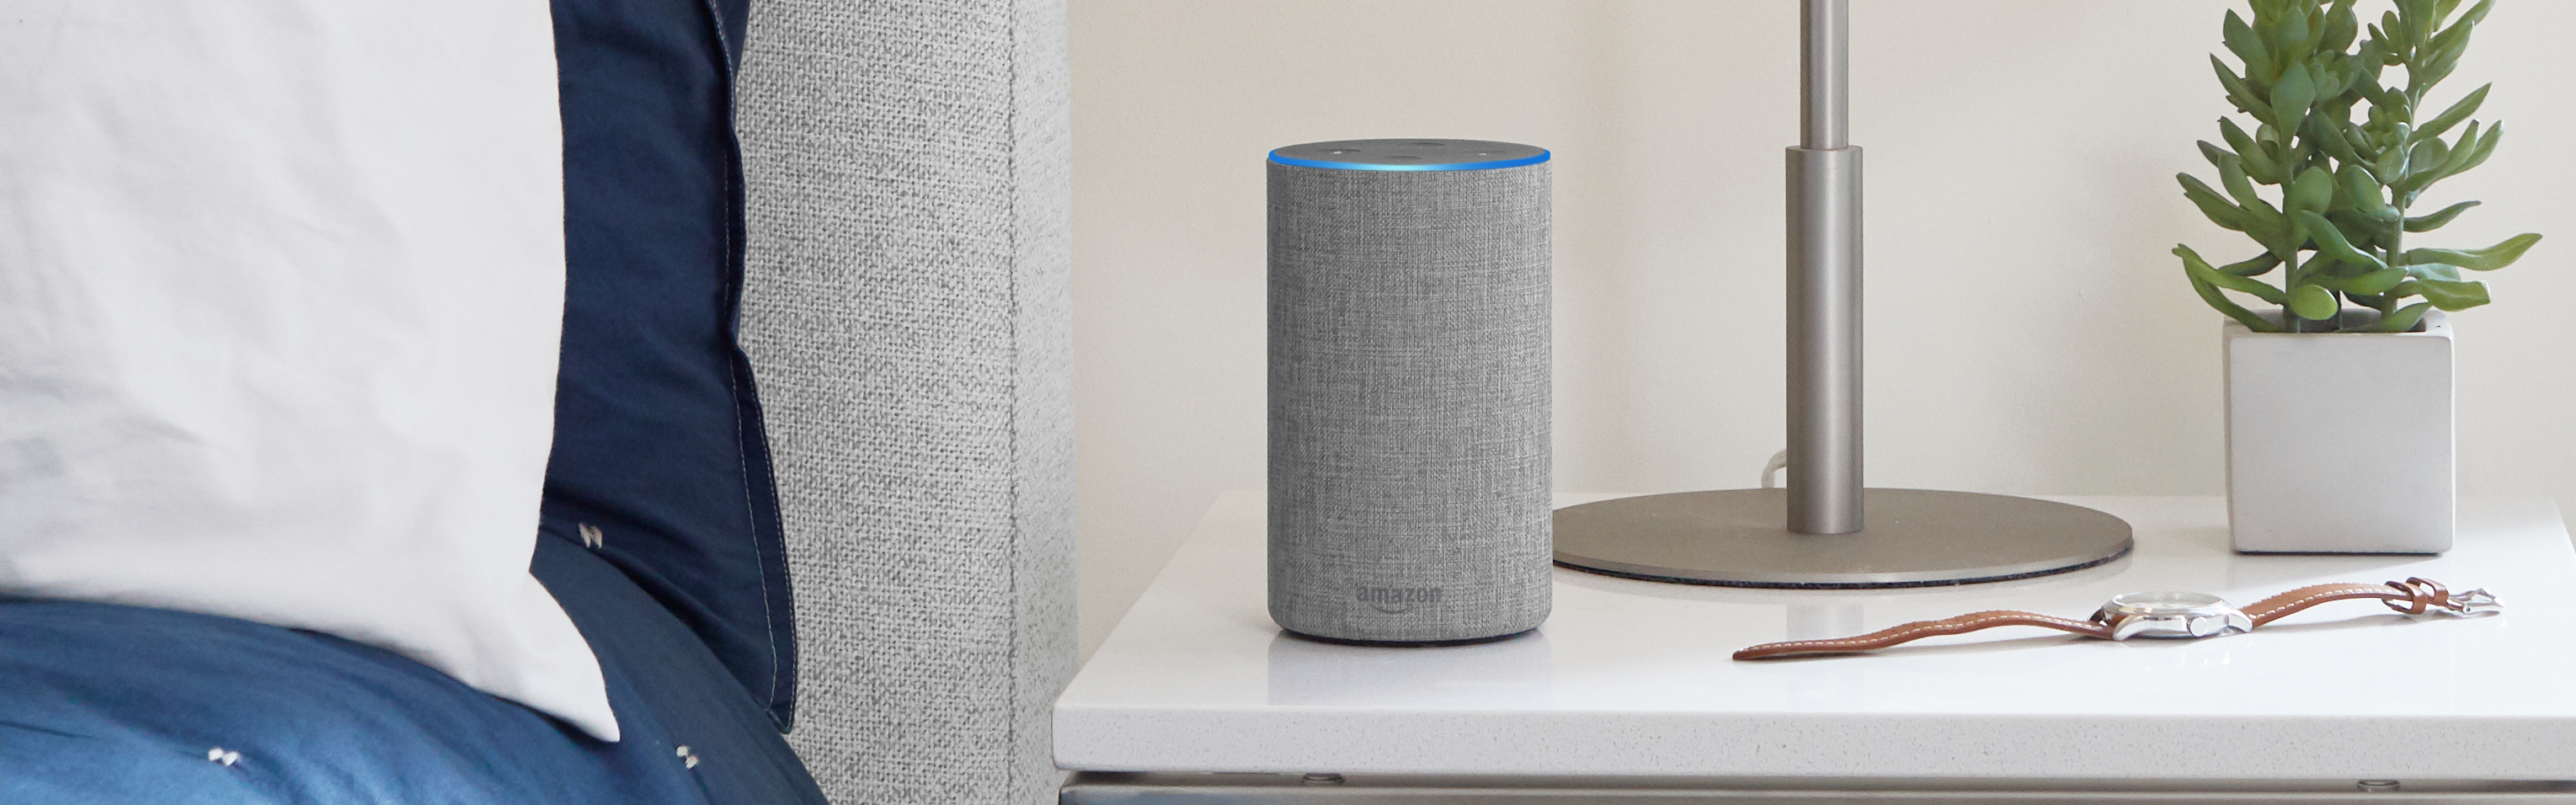 """""""Alexa, I'm Leaving"""" – New Guard Feature Listens for Glass Breaks & Alarms While You're Gone image"""